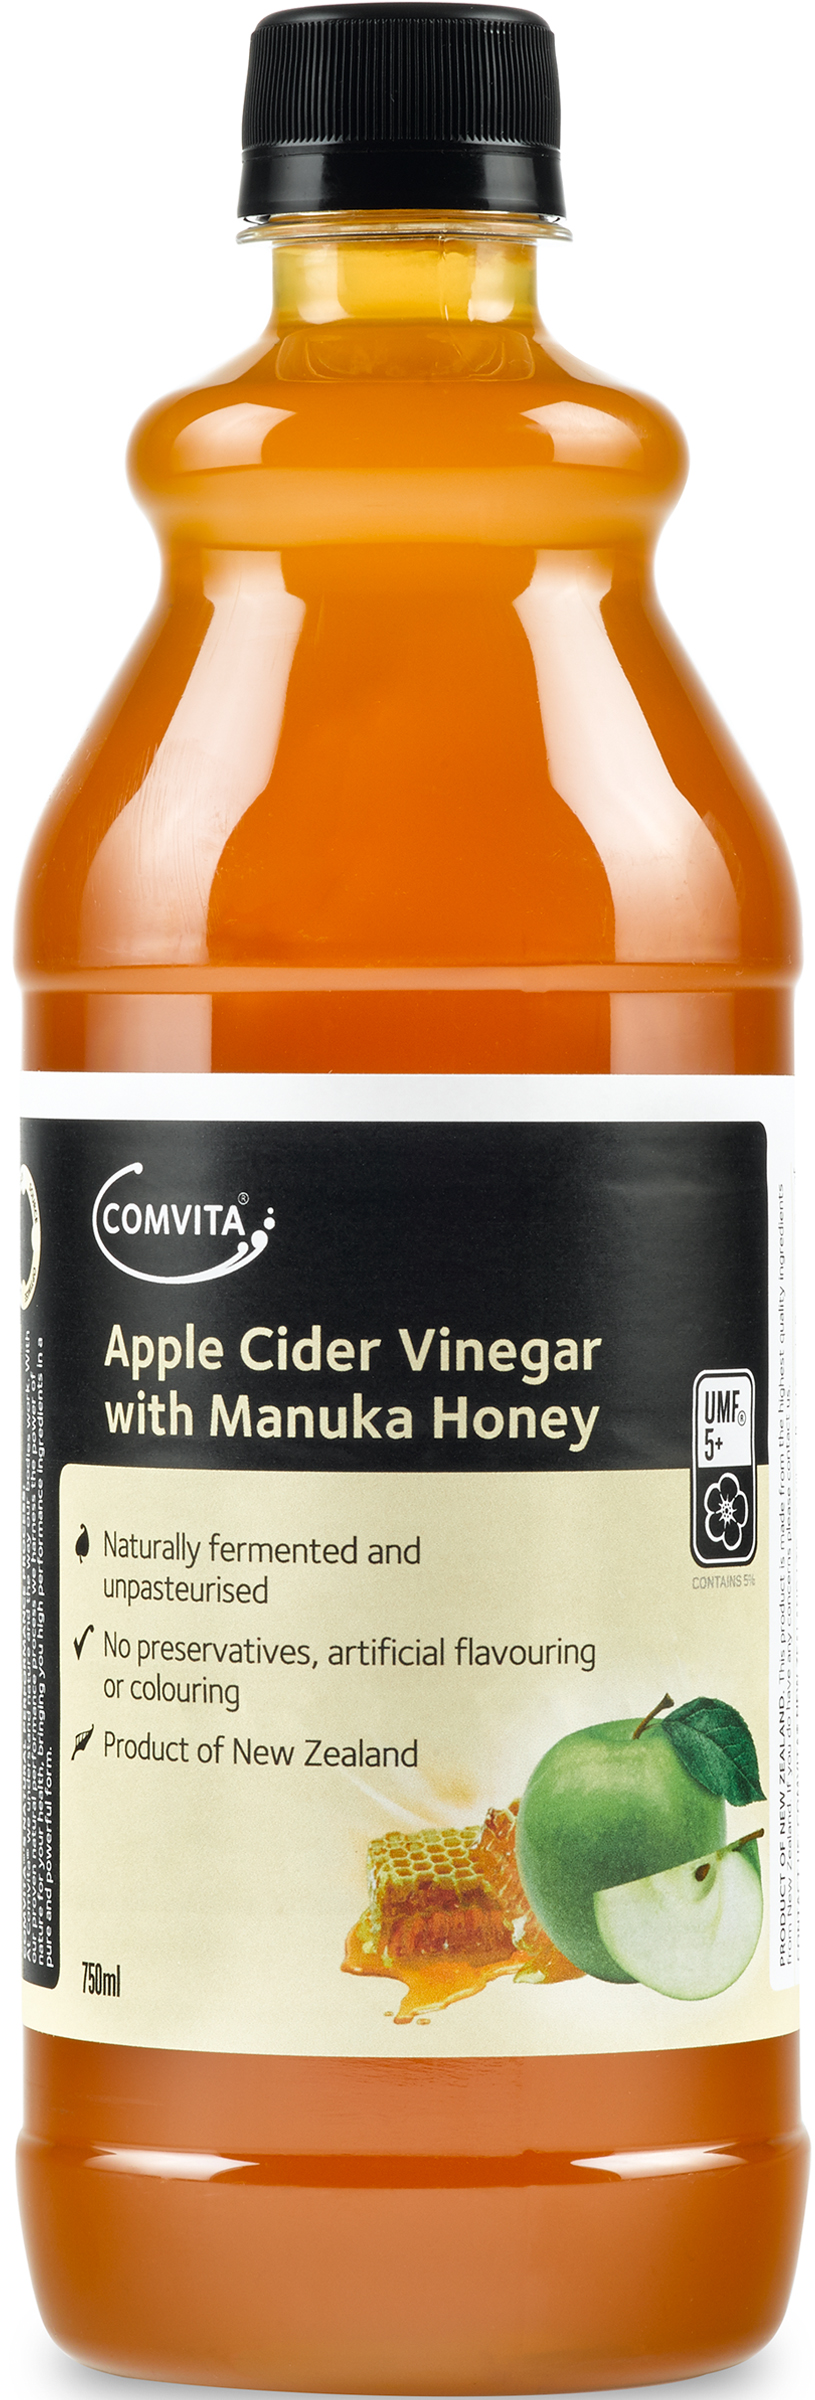 Comvita Manuka Honey & Apple Cider Vinegar 750 ml